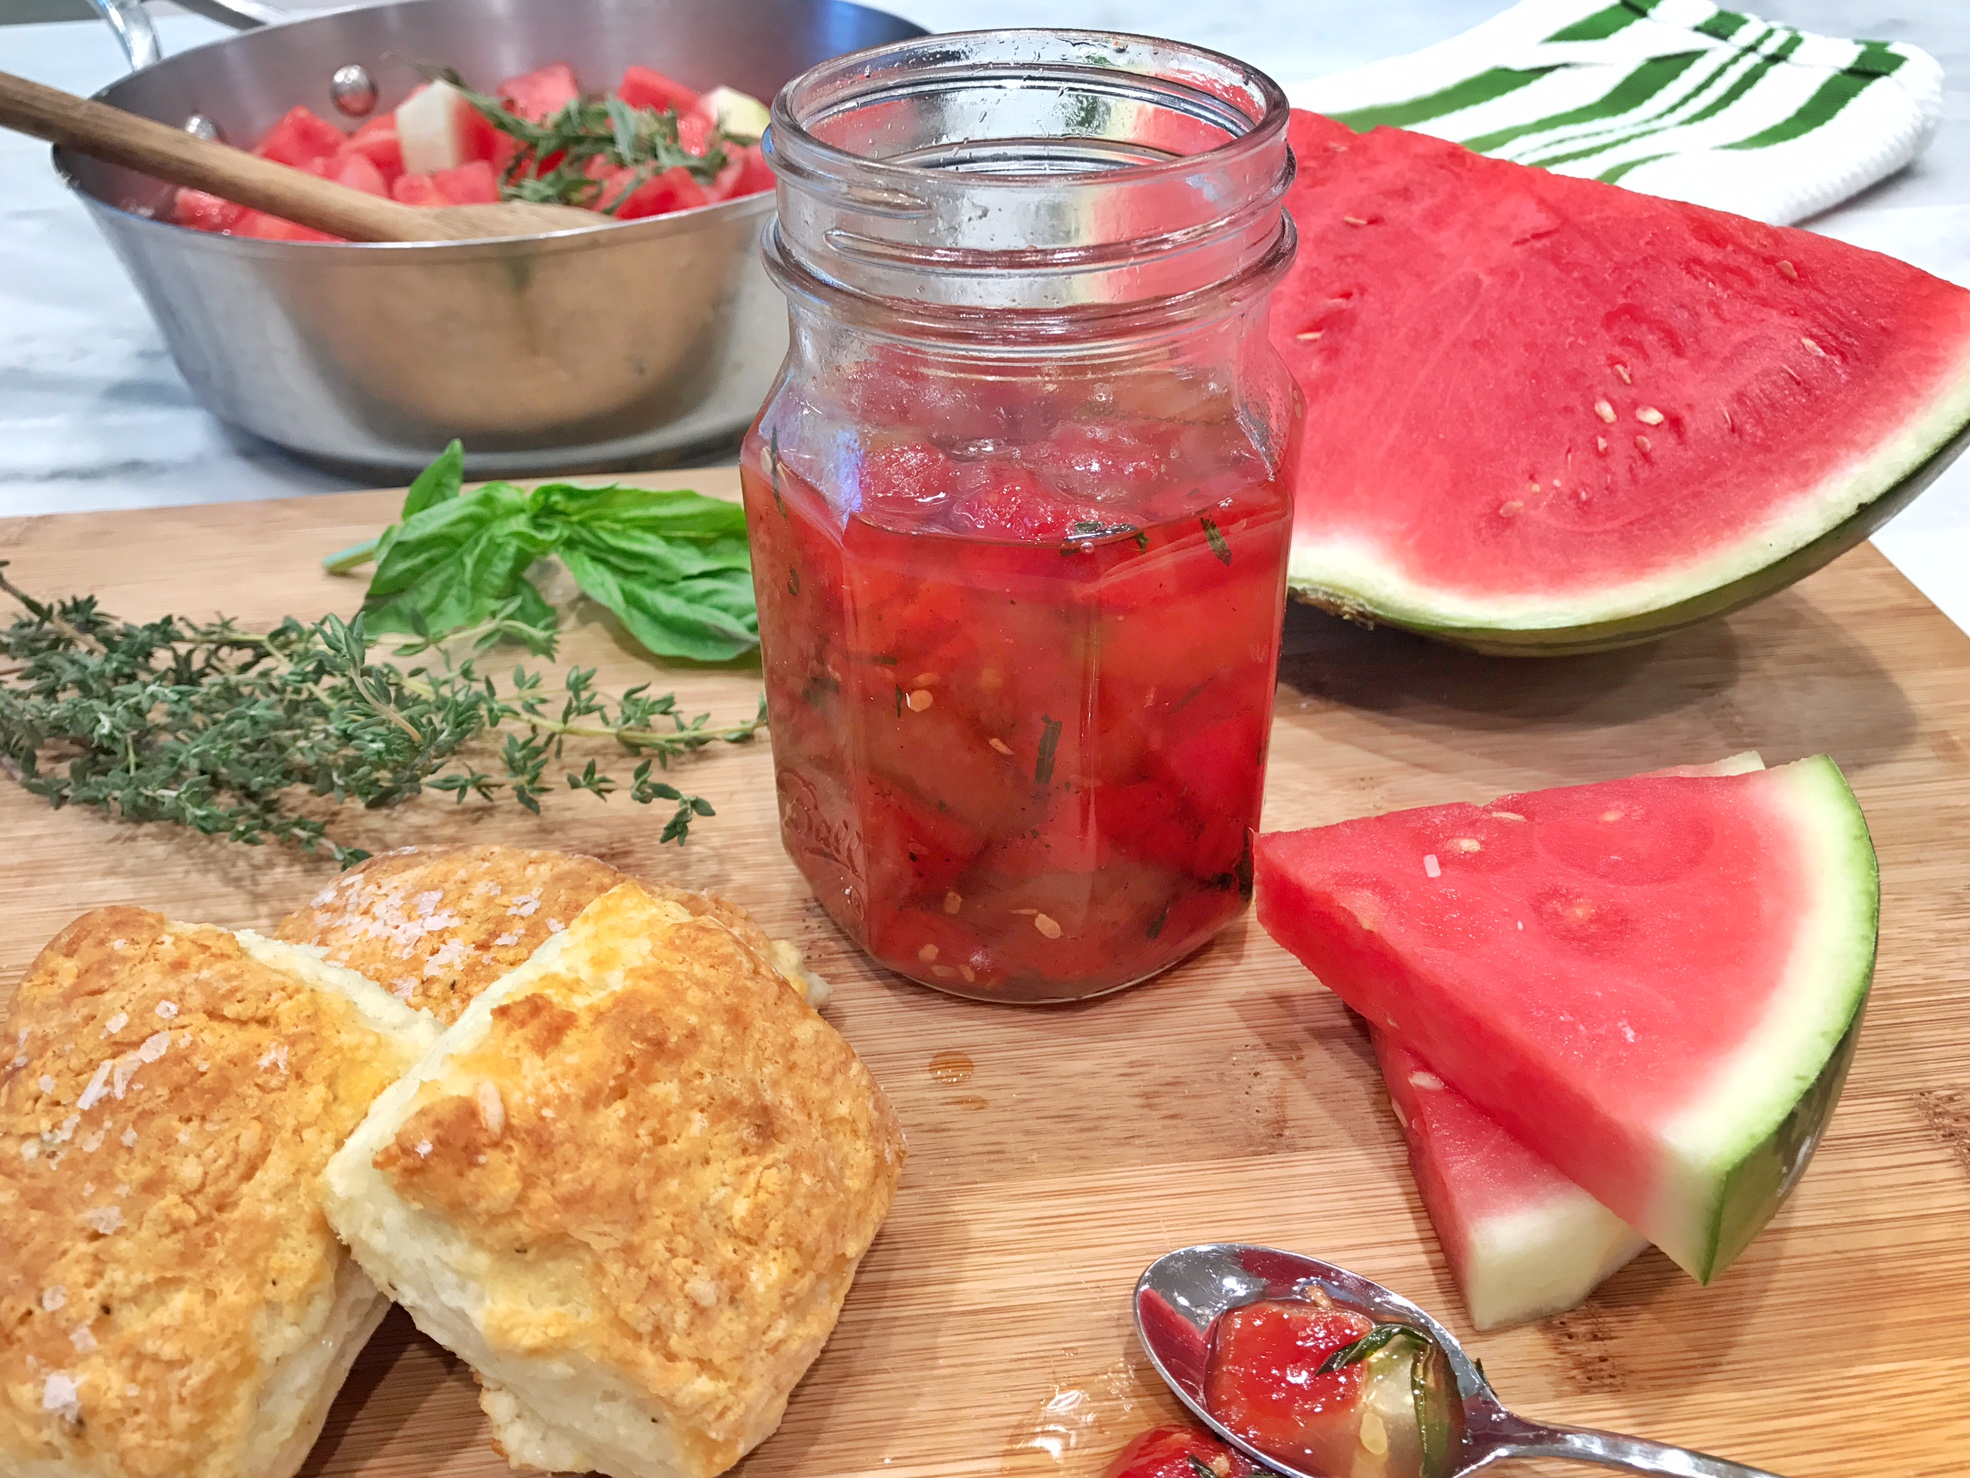 Chadwick Boyd's Parmesan-Black Pepper Biscuits with Watermelon Jam is What Summer Brunching is All About